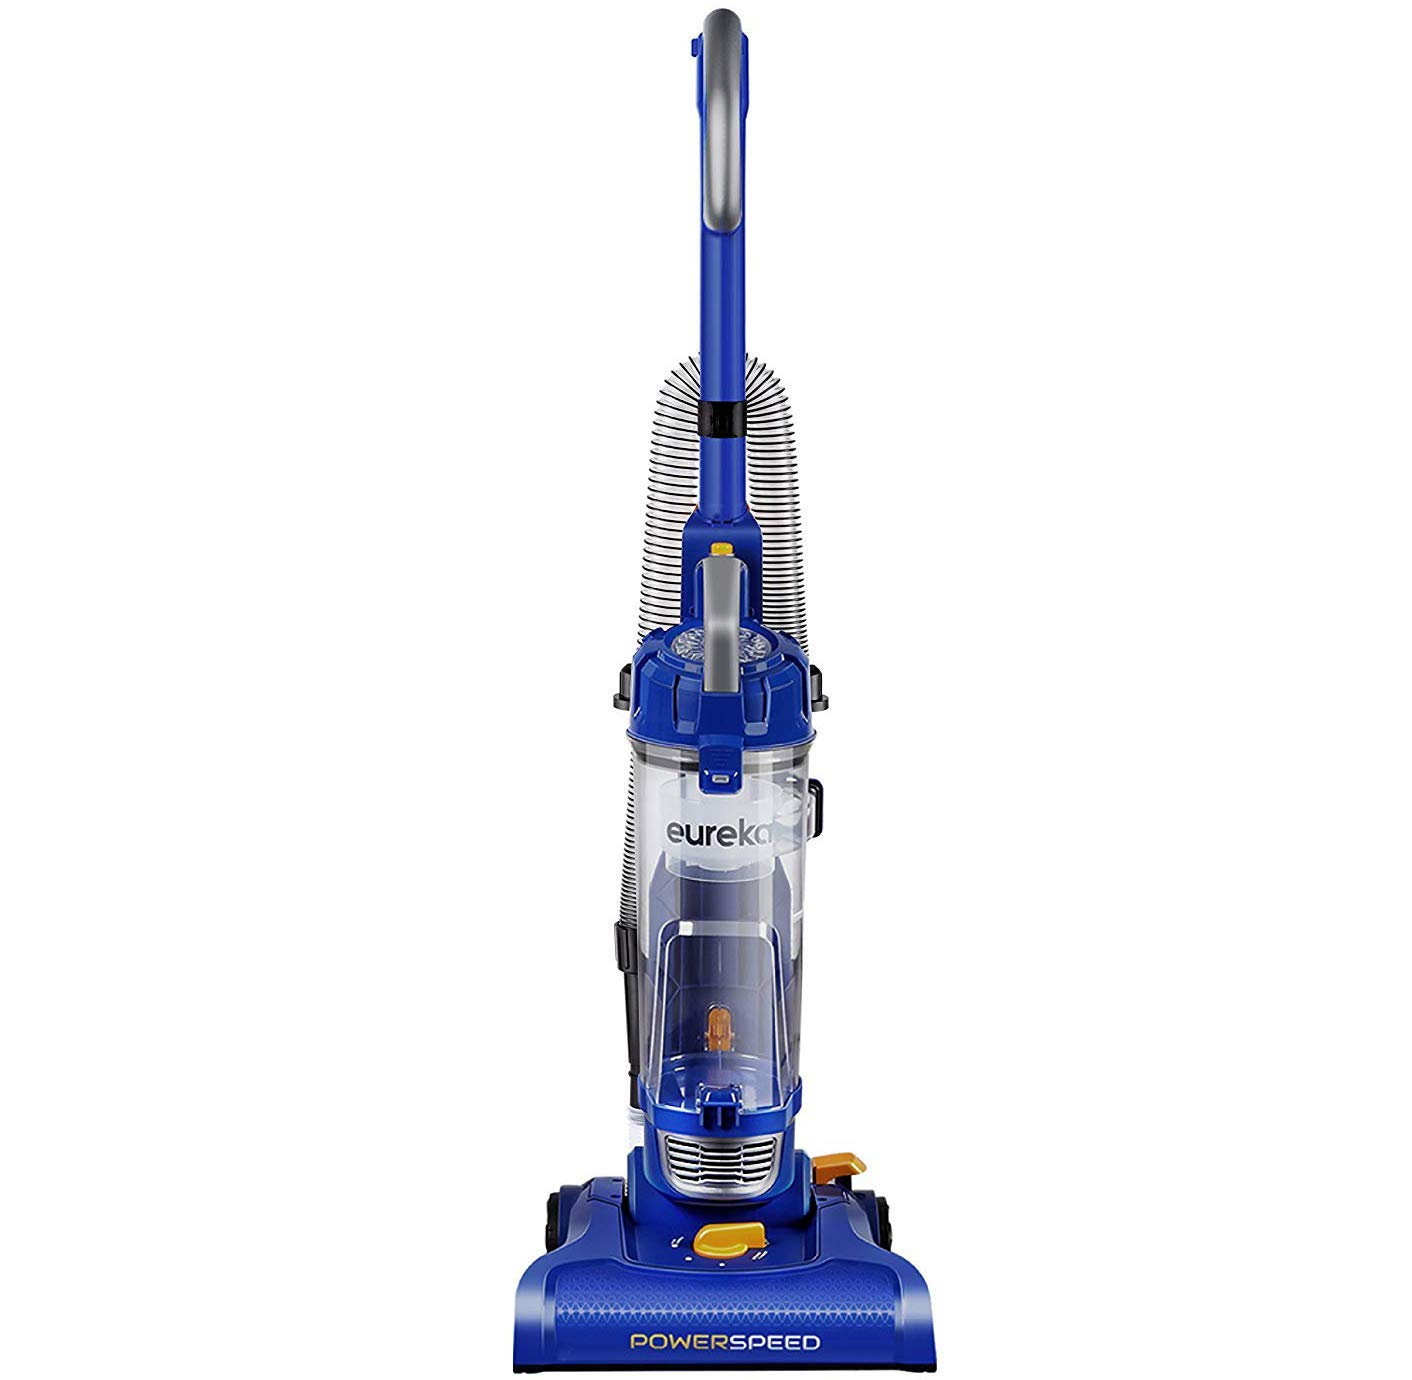 Eureka NEU182A PowerSpeed Lightweight Bagless Upright Vacuum Cleaner, Blue (Renewed)